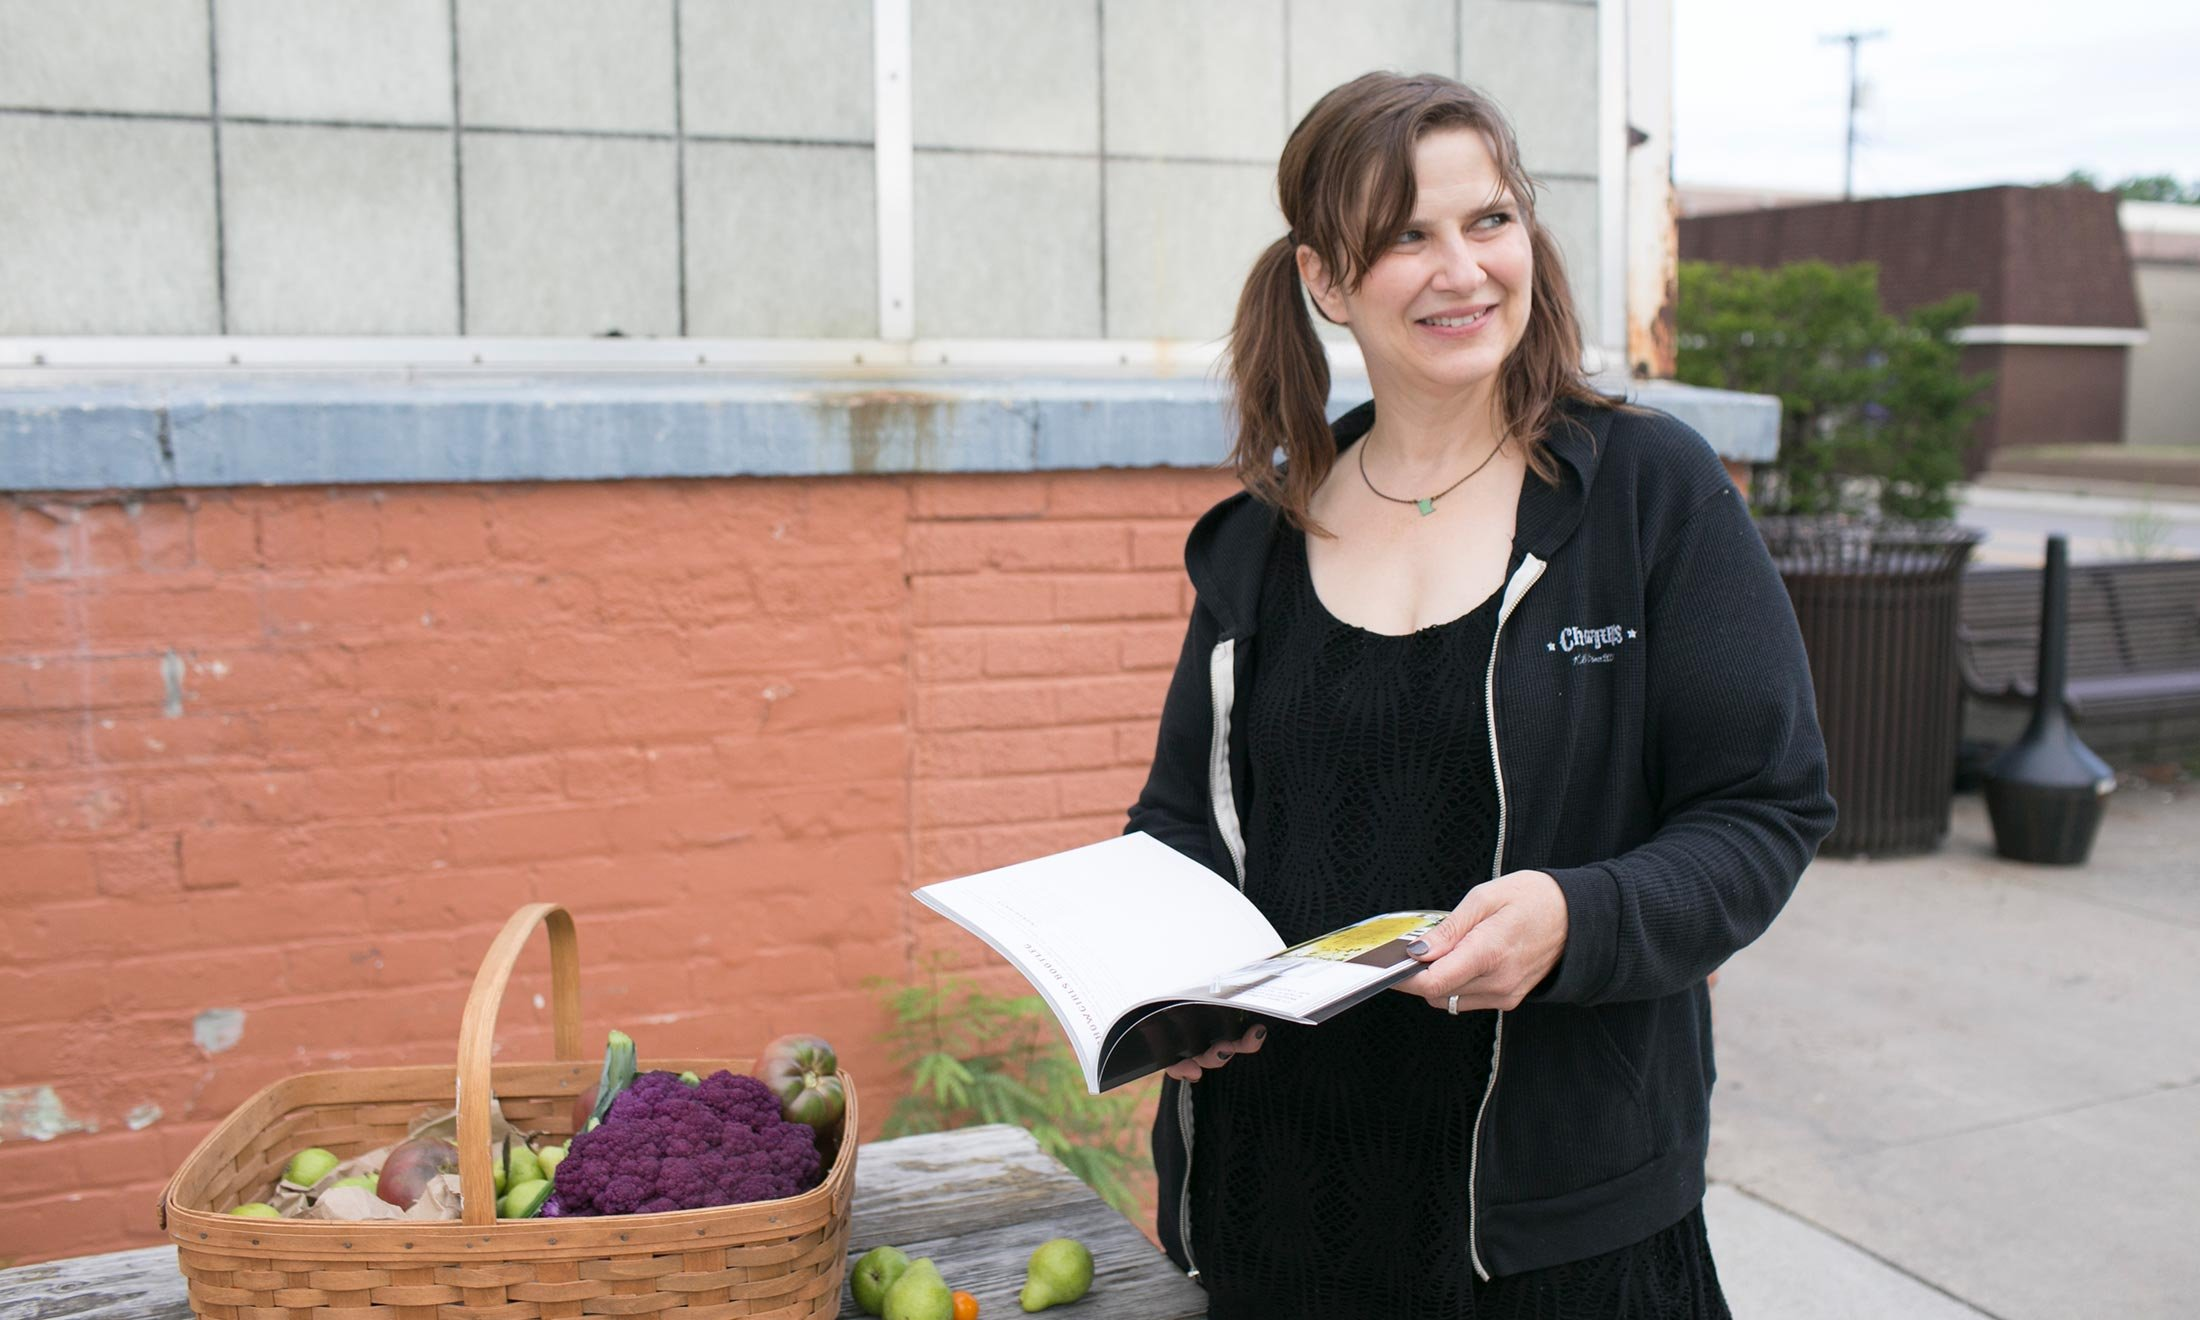 Oakland University alumna Heidi Andermack picks out produce at the Royal Oak Farmers Market while flipping through her recipe book